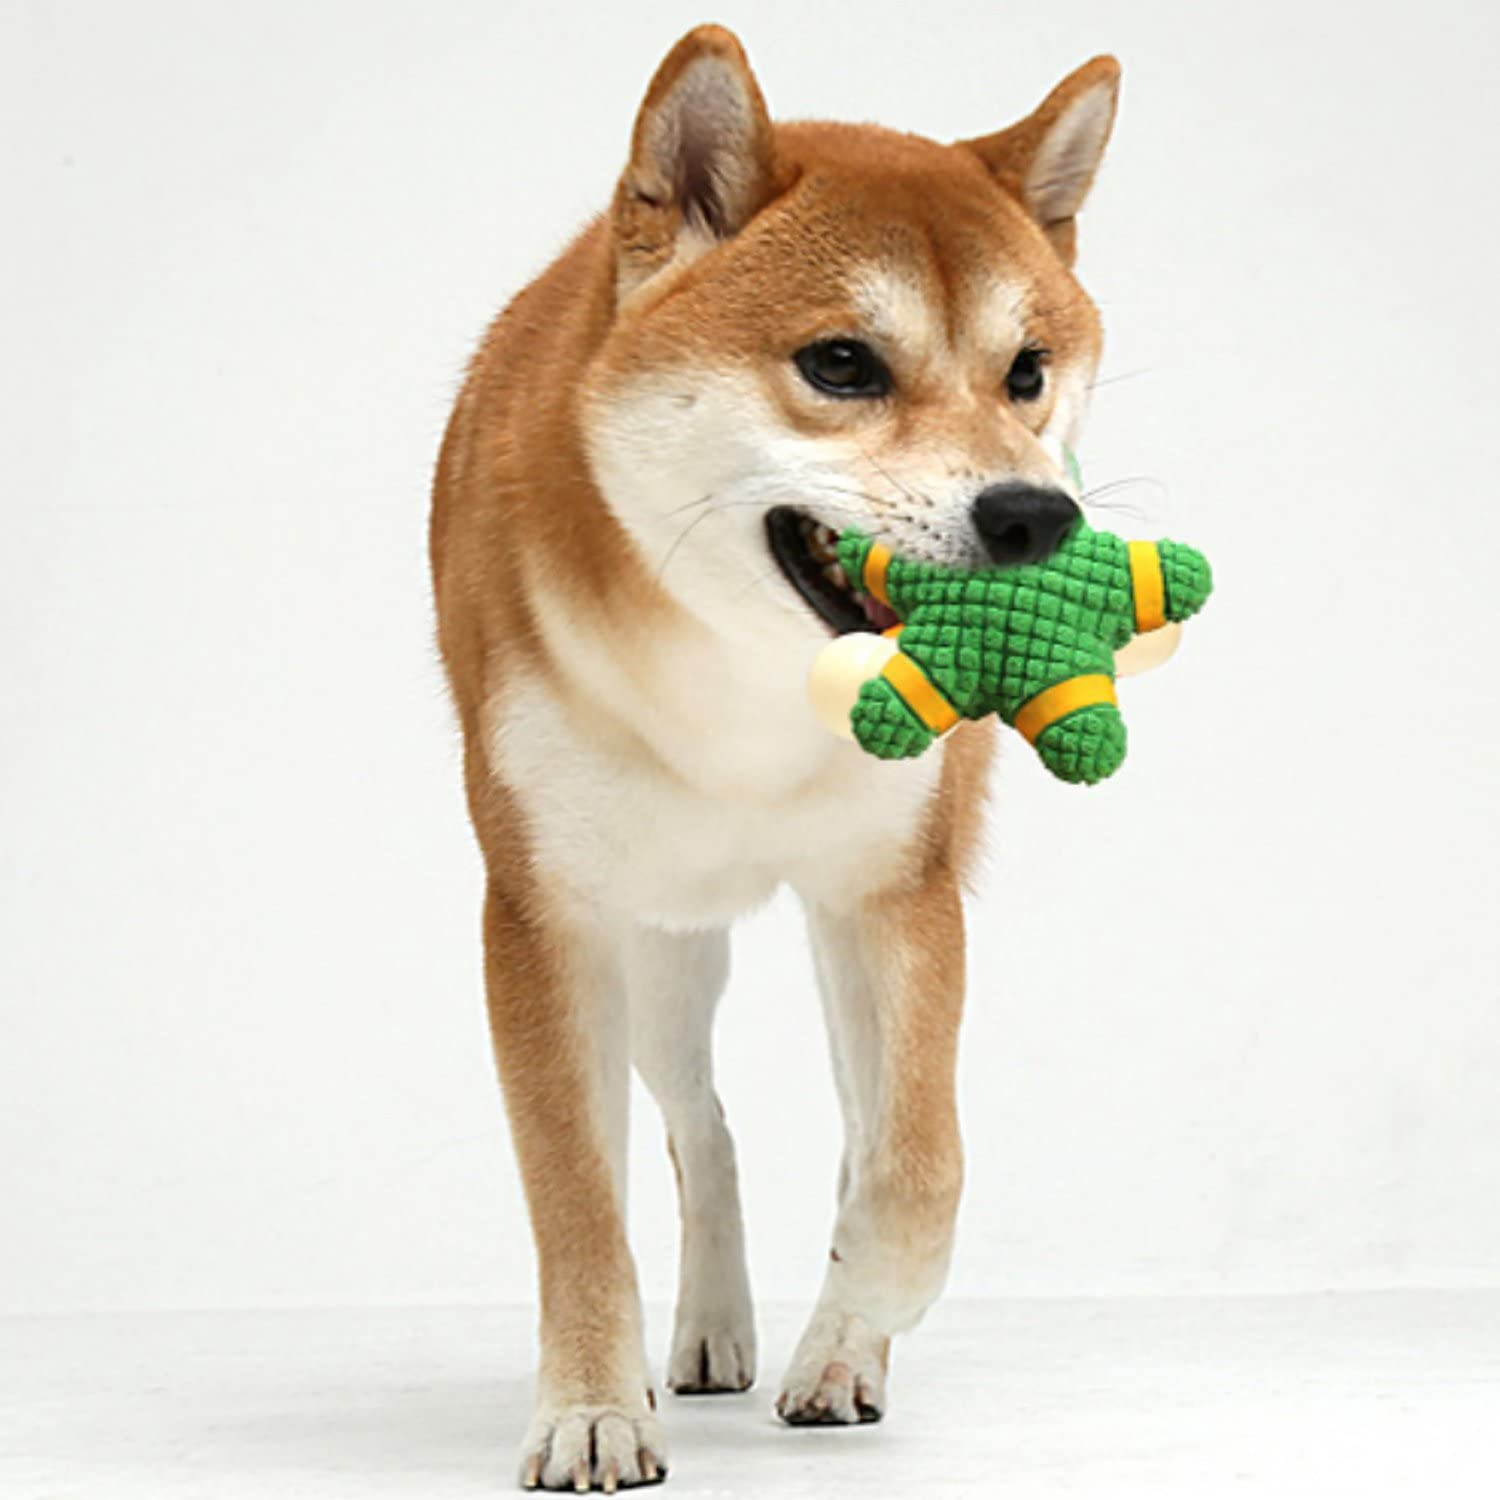 EEToys Squeaky Toy Soft Latex Dog Toy Floating Ball for Interactive Fetch /& Play Green Ring Large